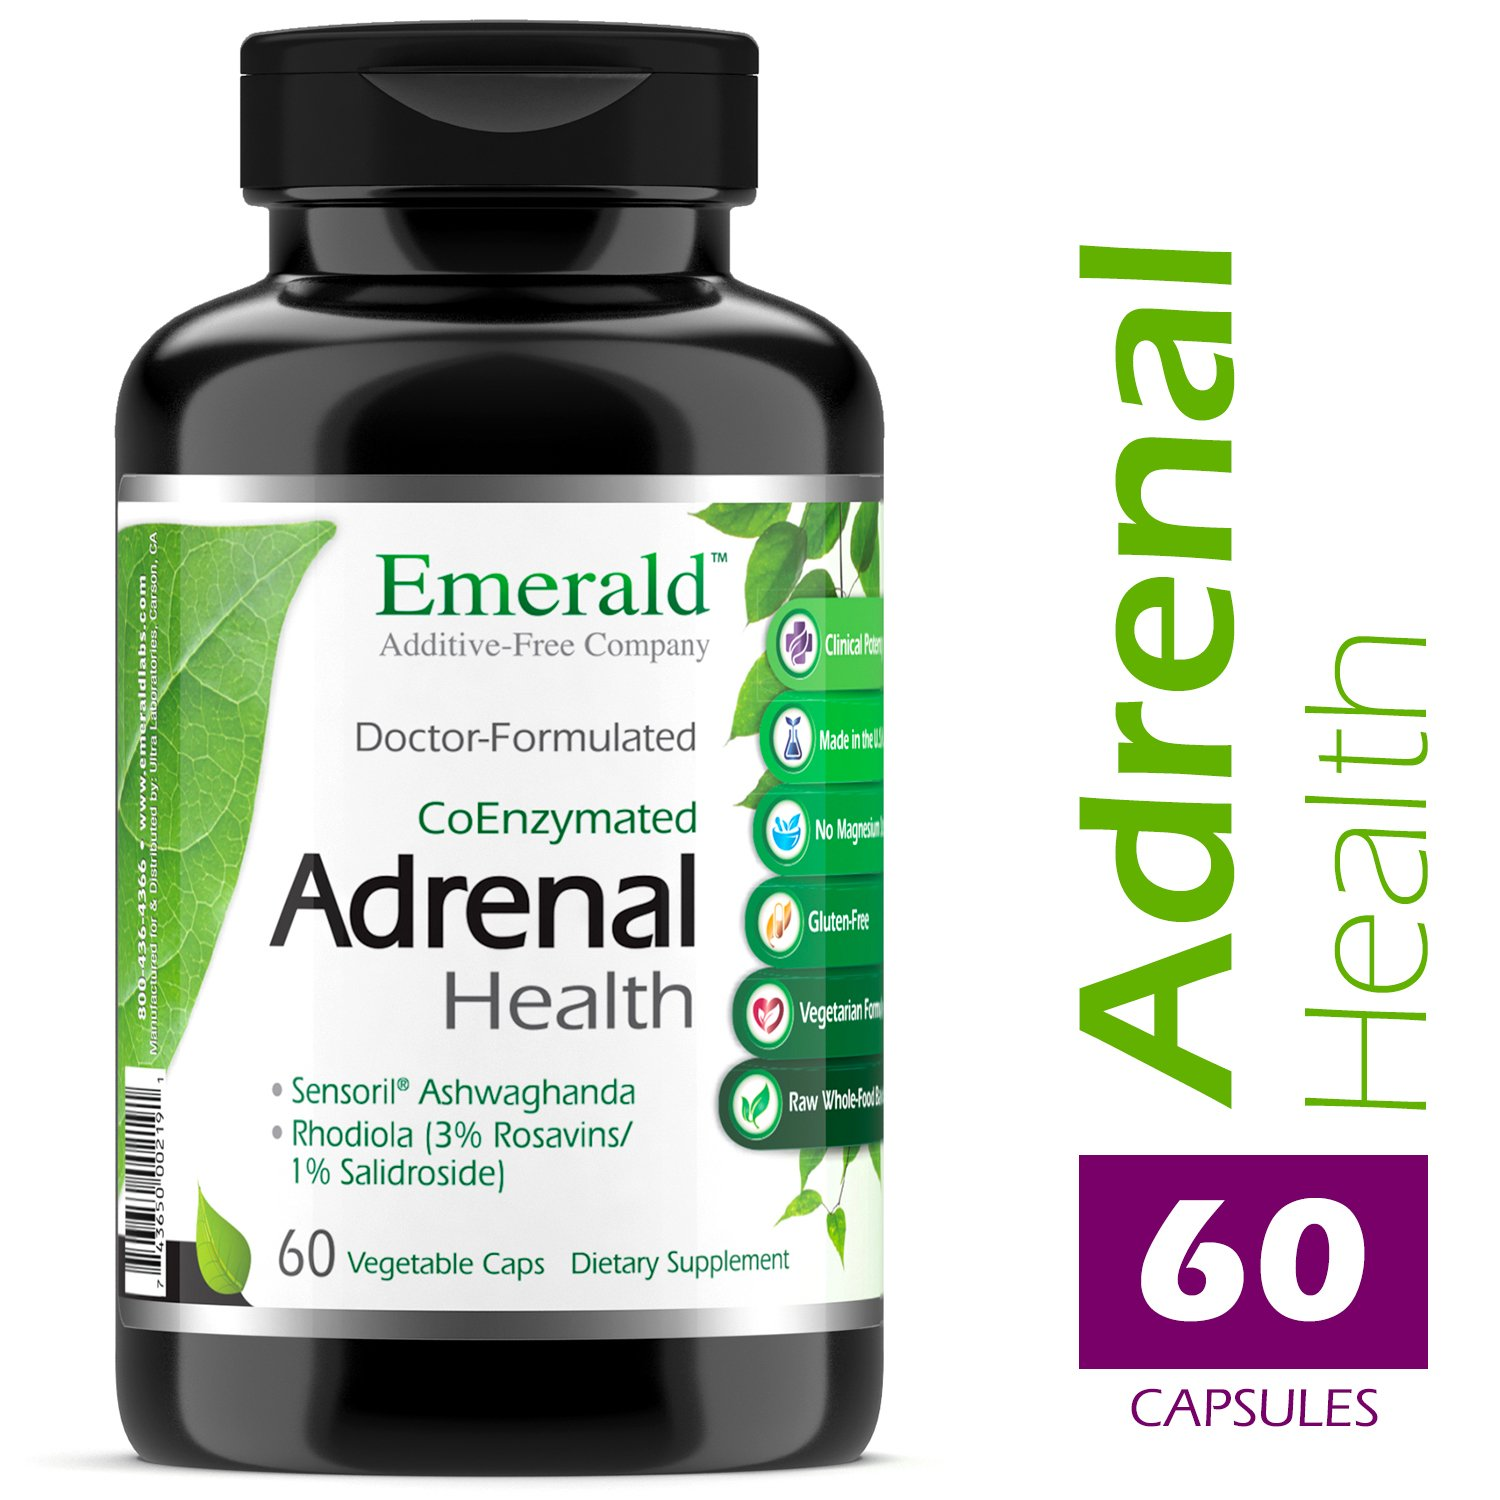 Adrenal Health - with Sensoril Ashwagandha for Improved Energy Levels, Sleep Support, Stress Relief, Promotes Mental Clarity - Emerald Laboratories - 60 Vegetable Capsules